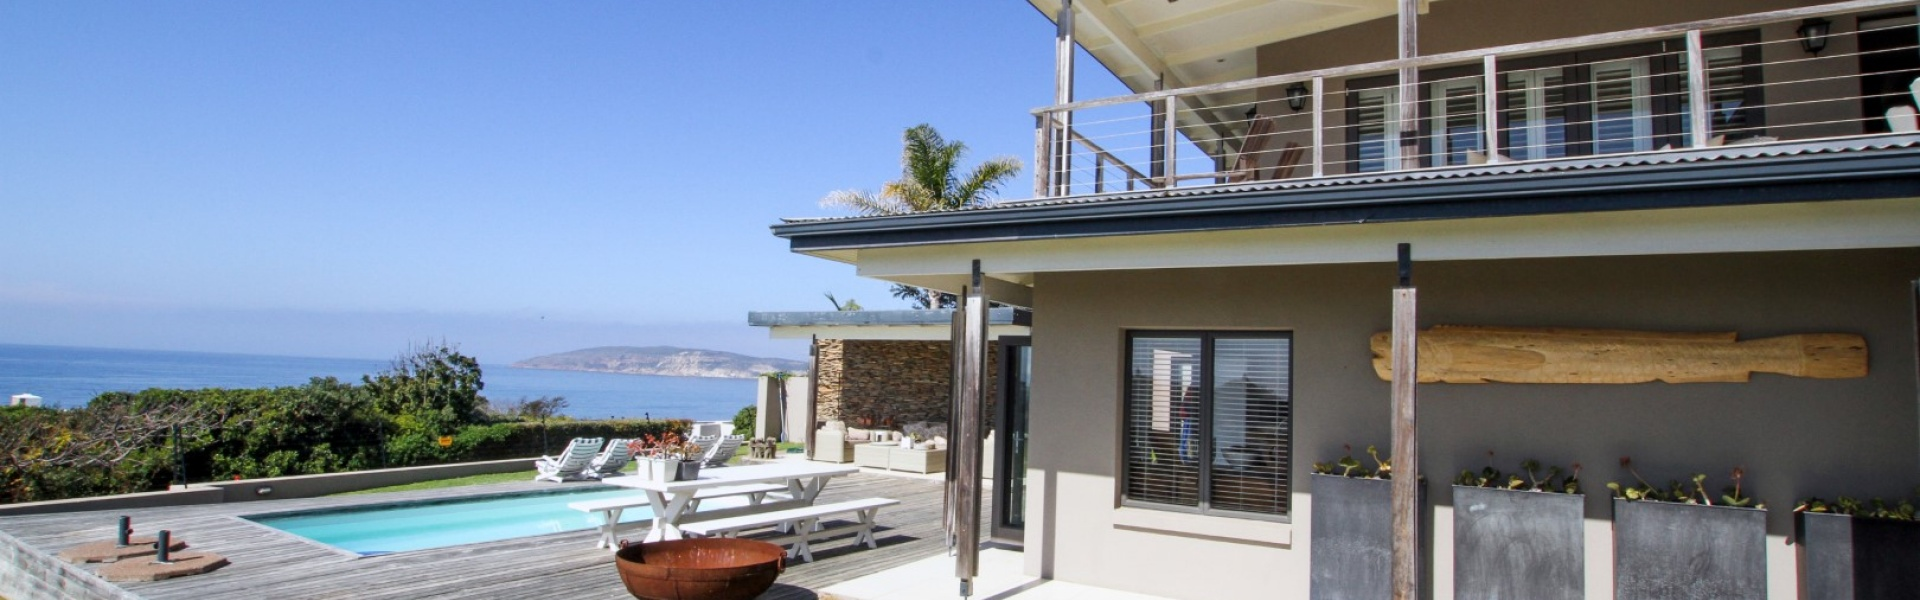 Plettenberg Bay, 6600, 5 Bedrooms Bedrooms, ,5 BathroomsBathrooms,Villa,For Sale,1047